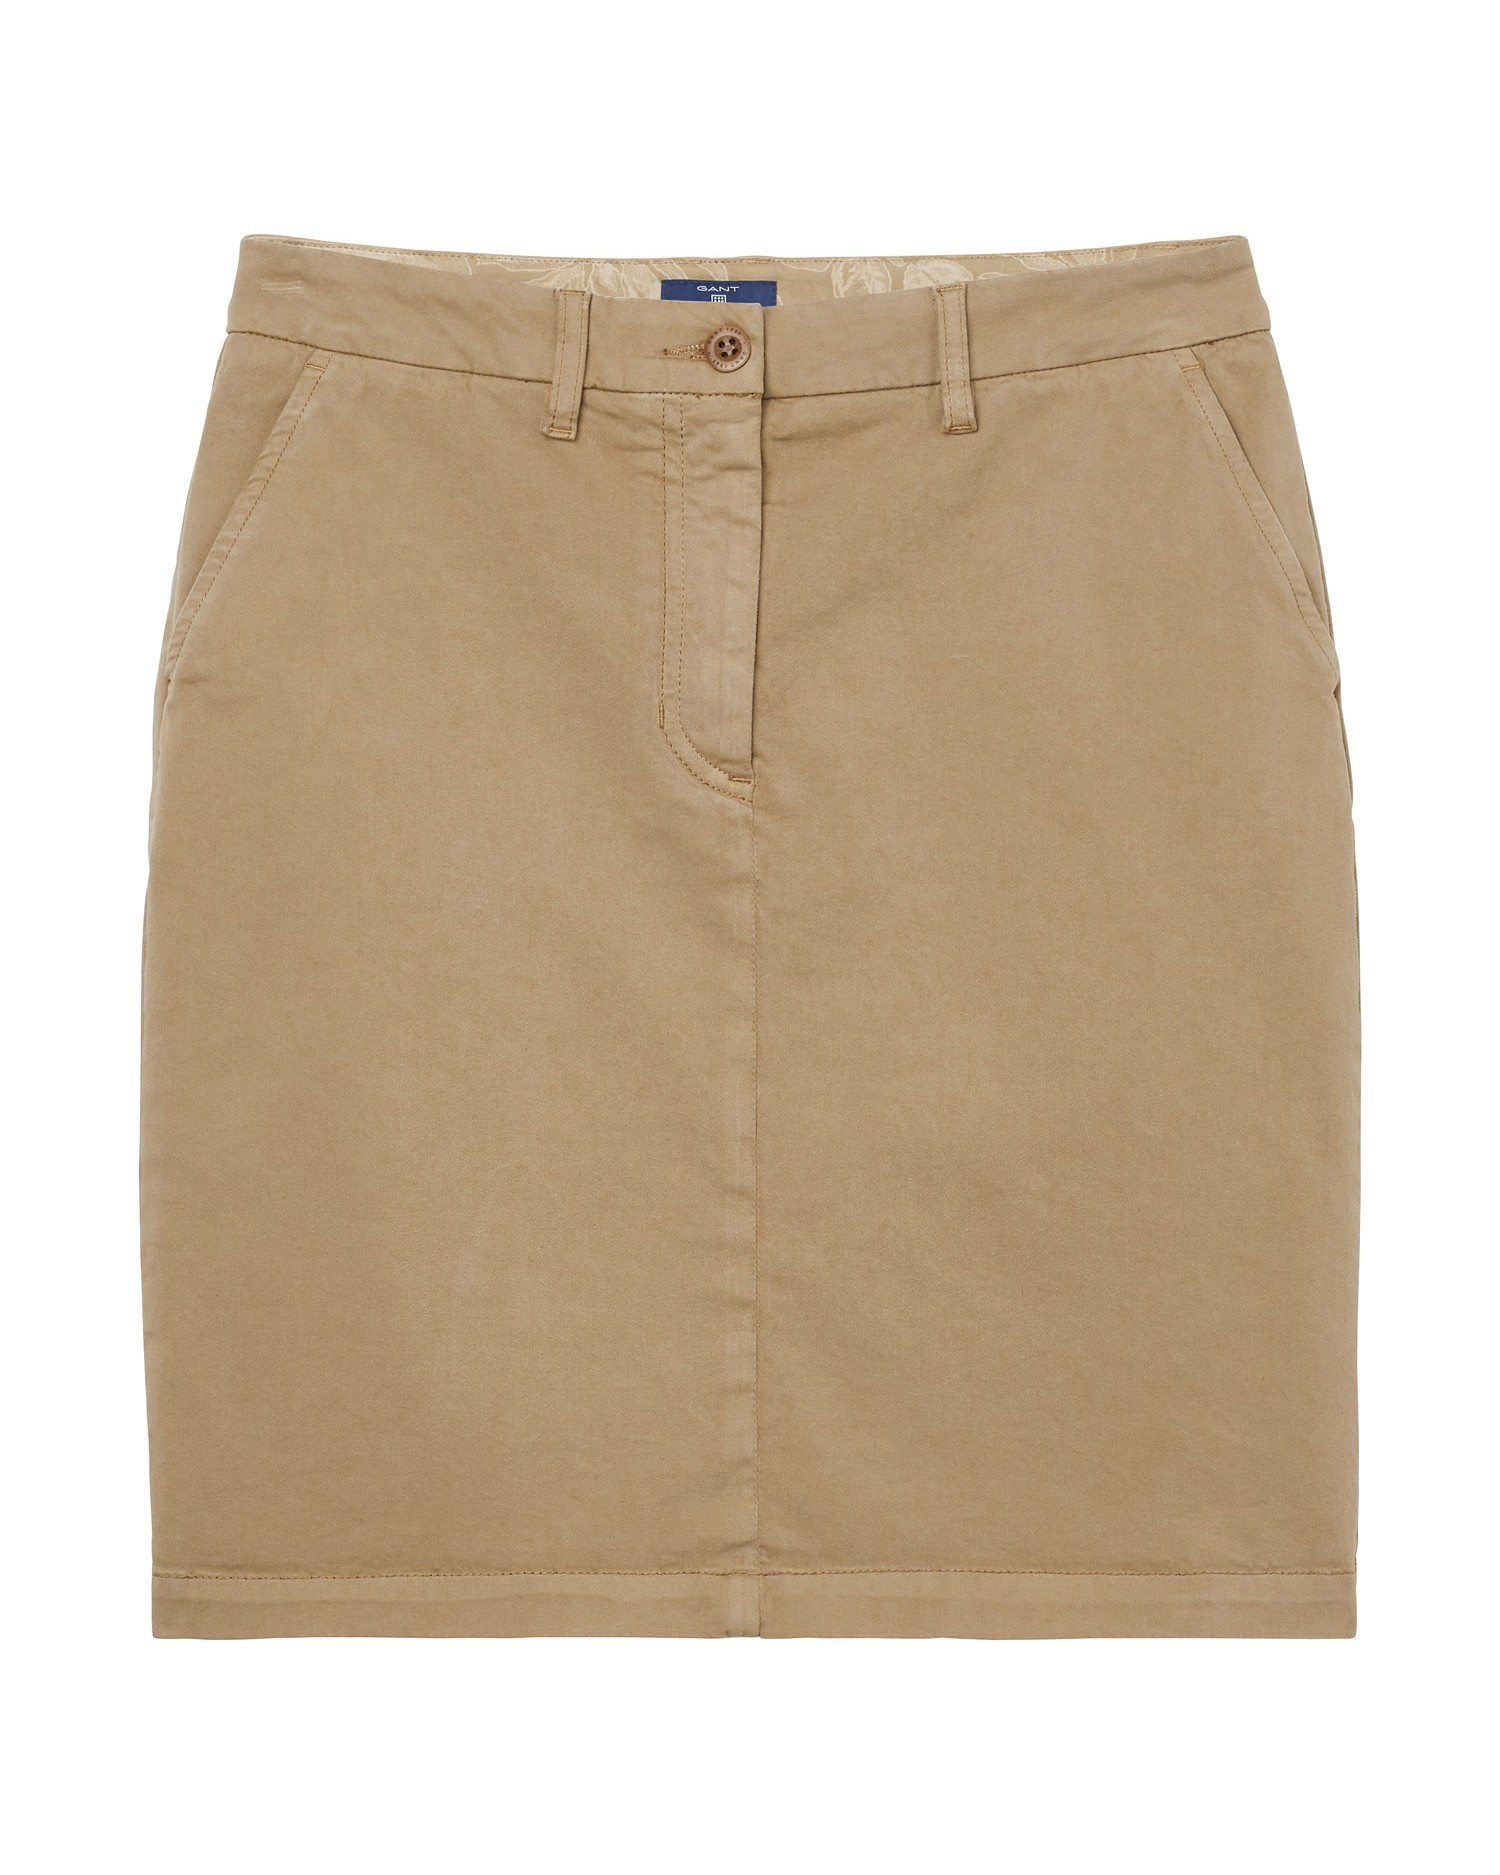 GANT Women's Original Chino Skirt - 440132